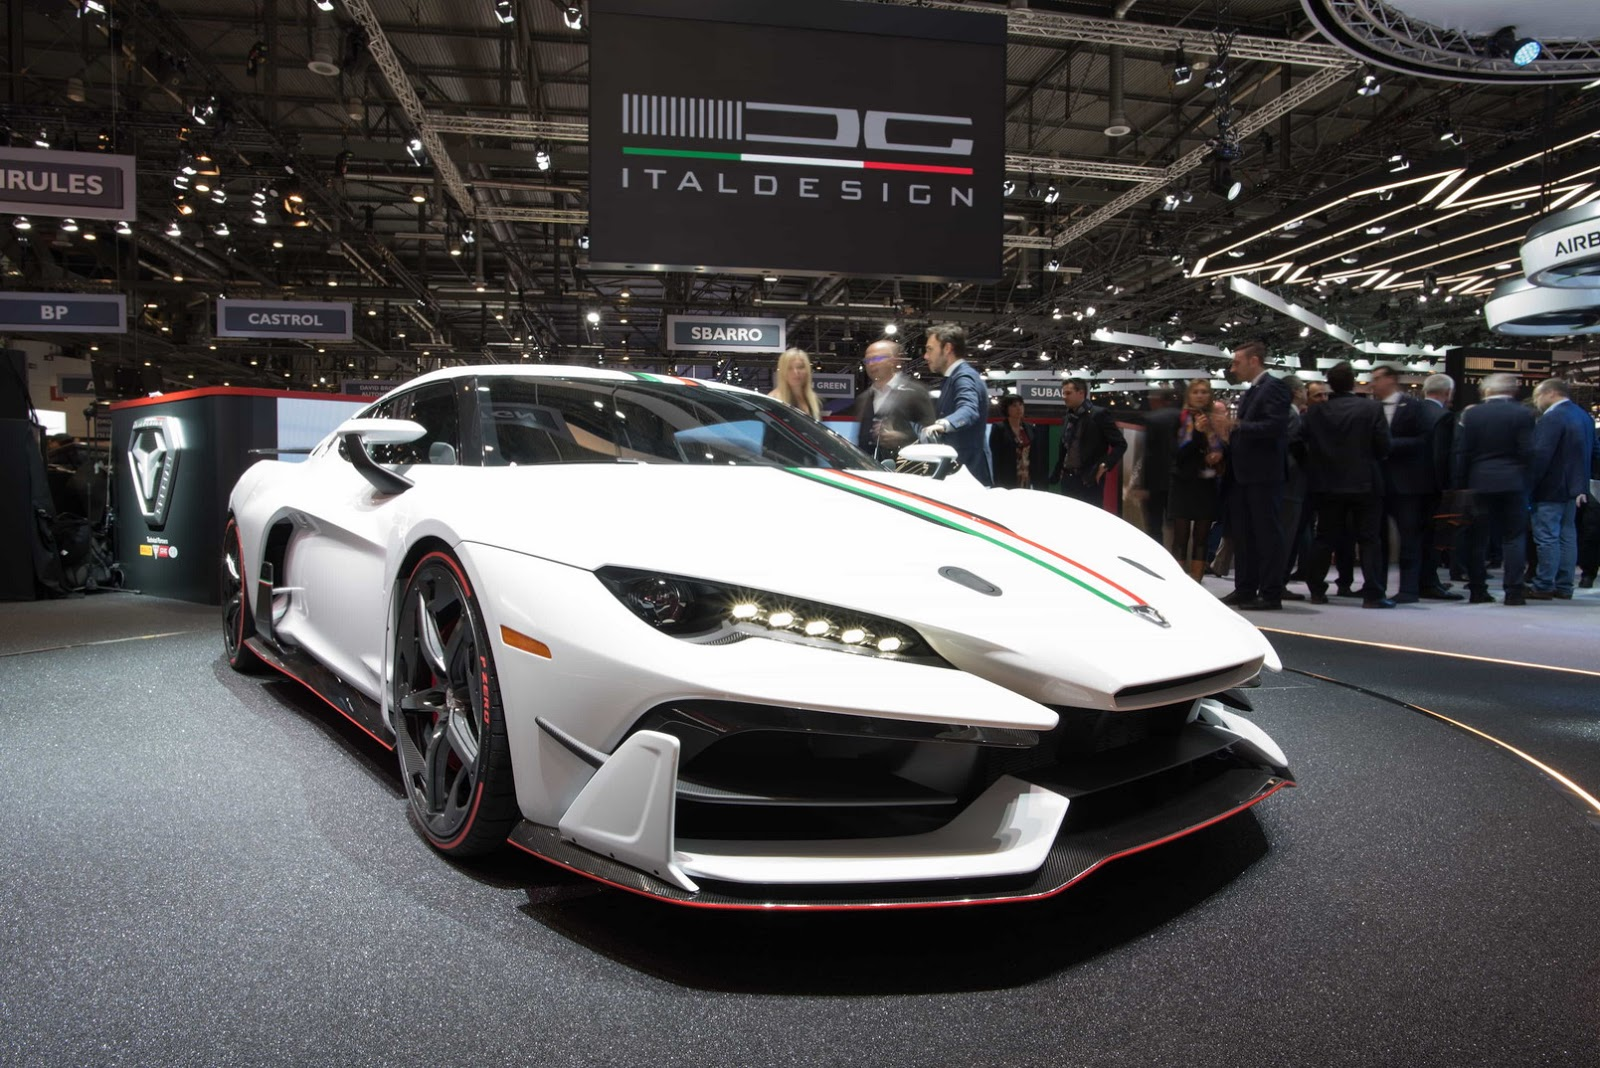 Italdesign Zerouno (1)